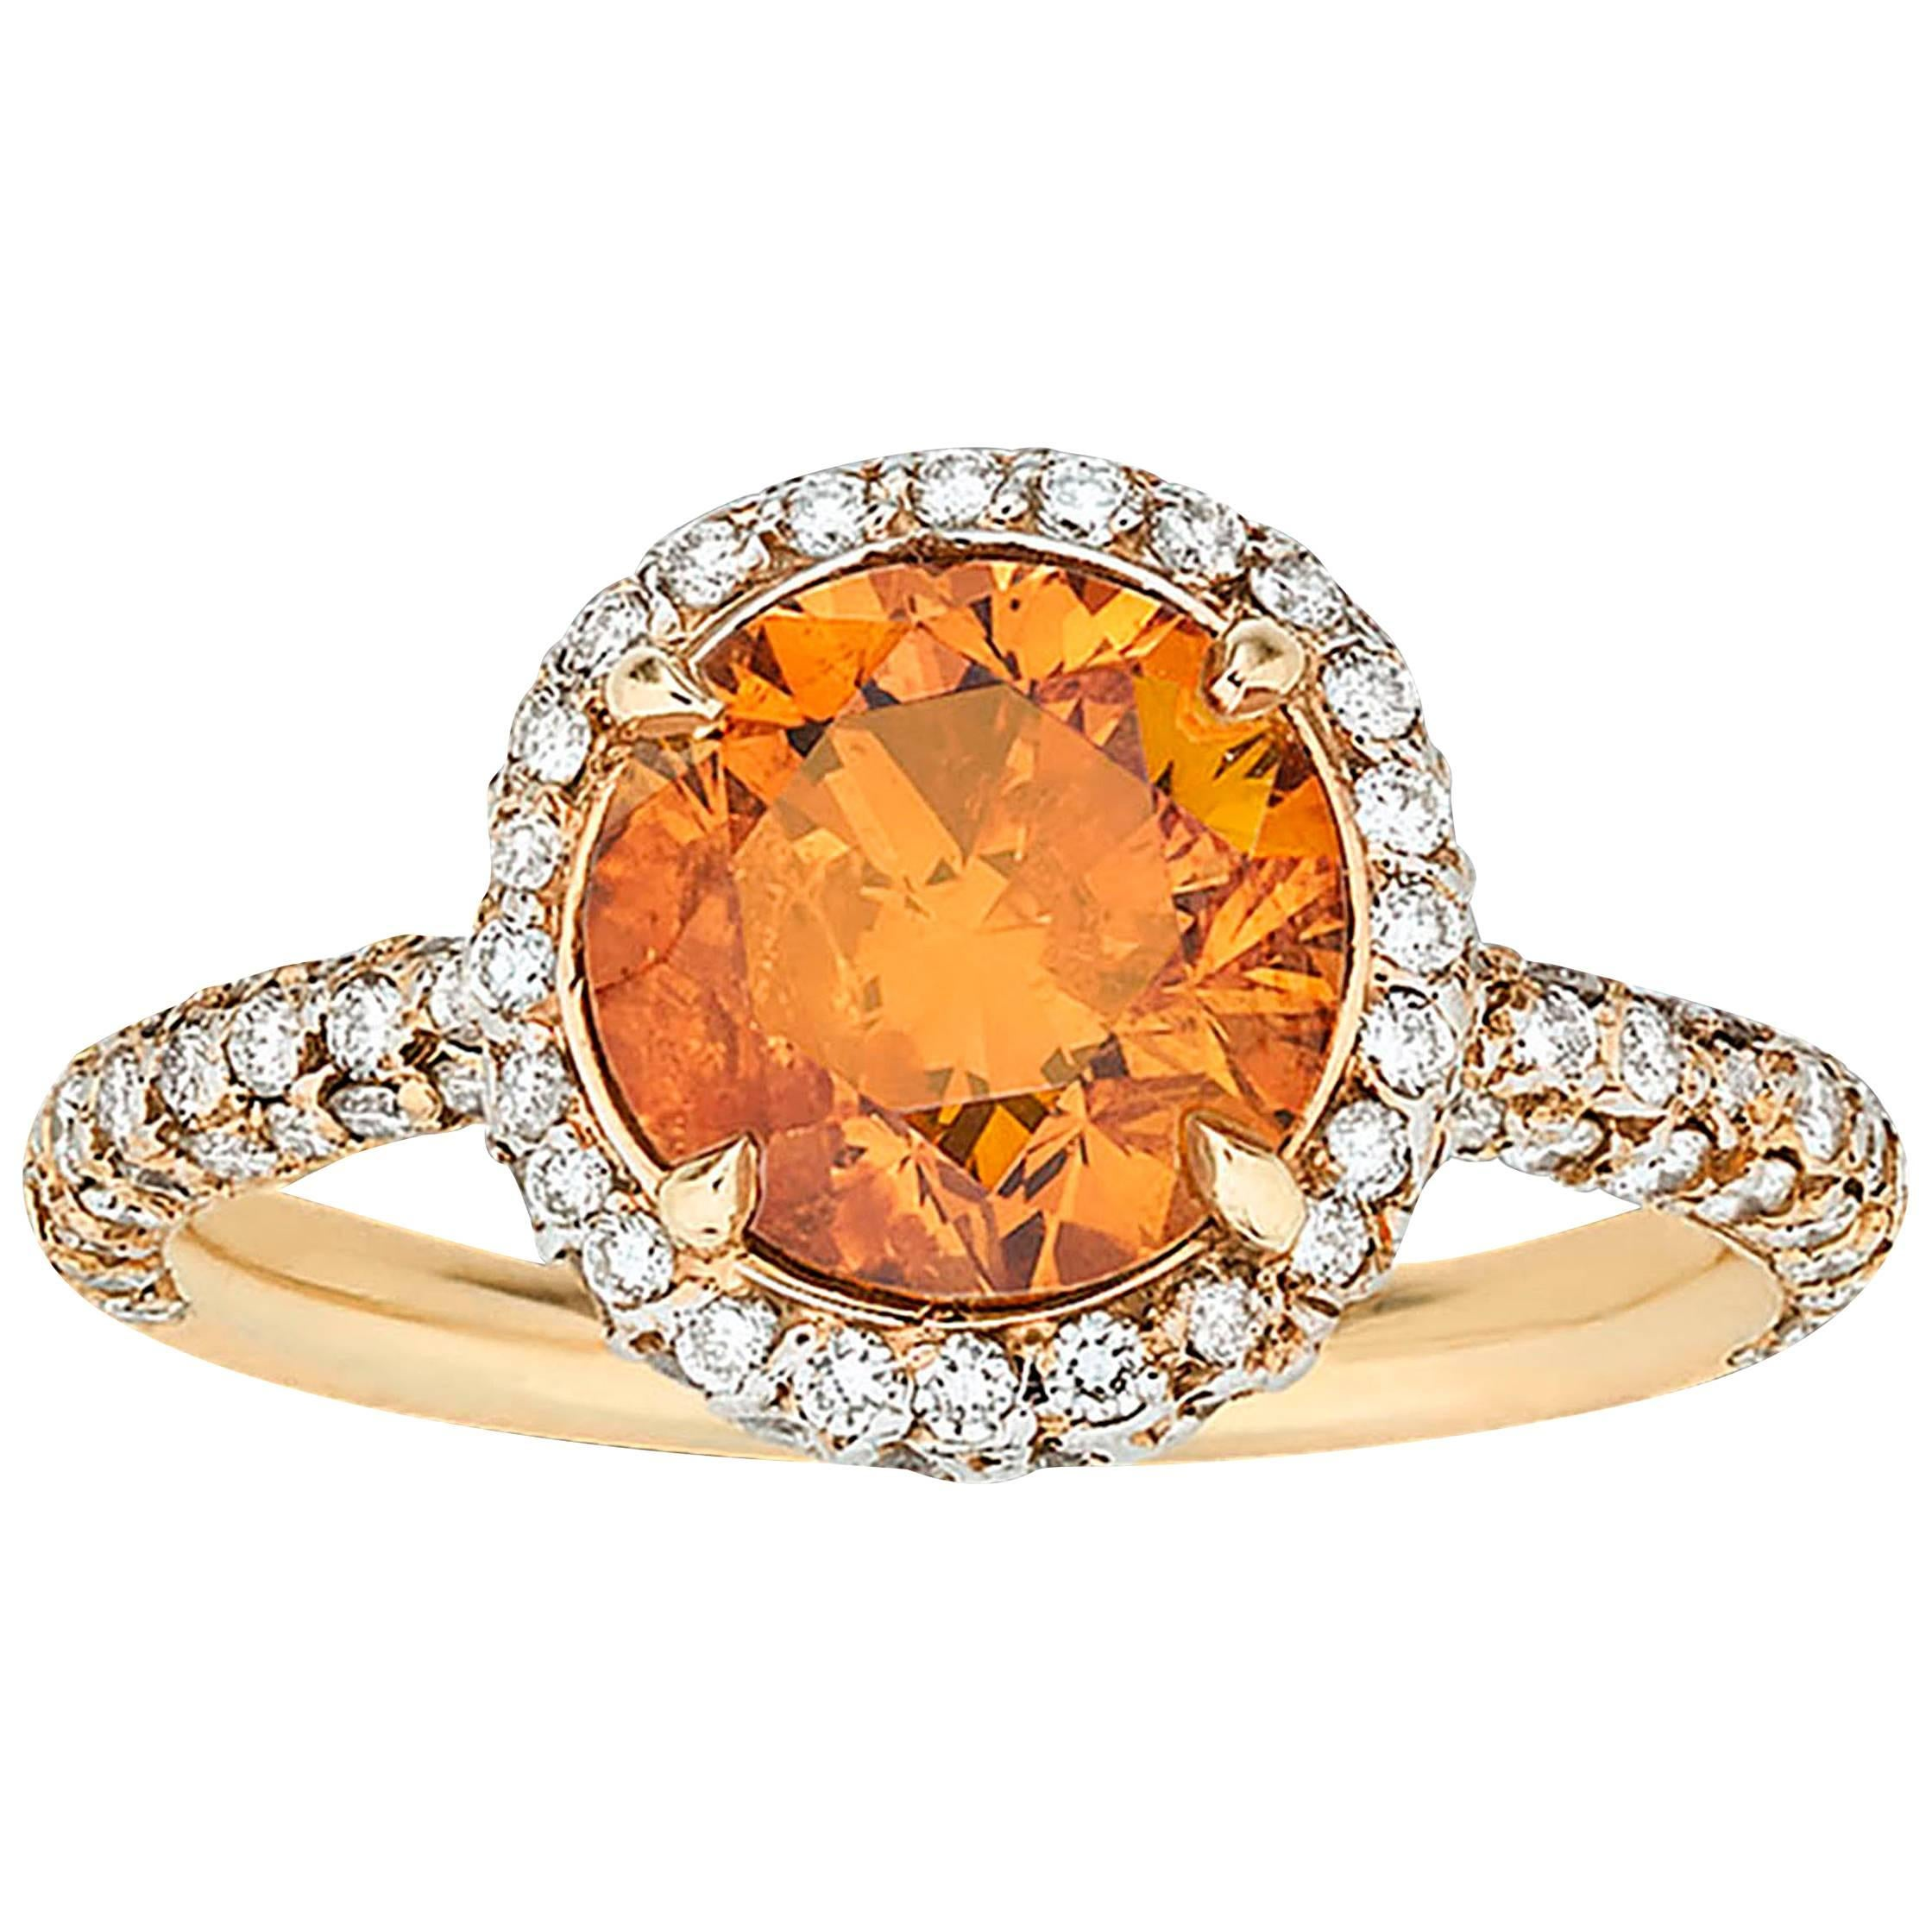 in vintage luxury and aquamarine elegant wedding rambling rings estate engagement of rose orange